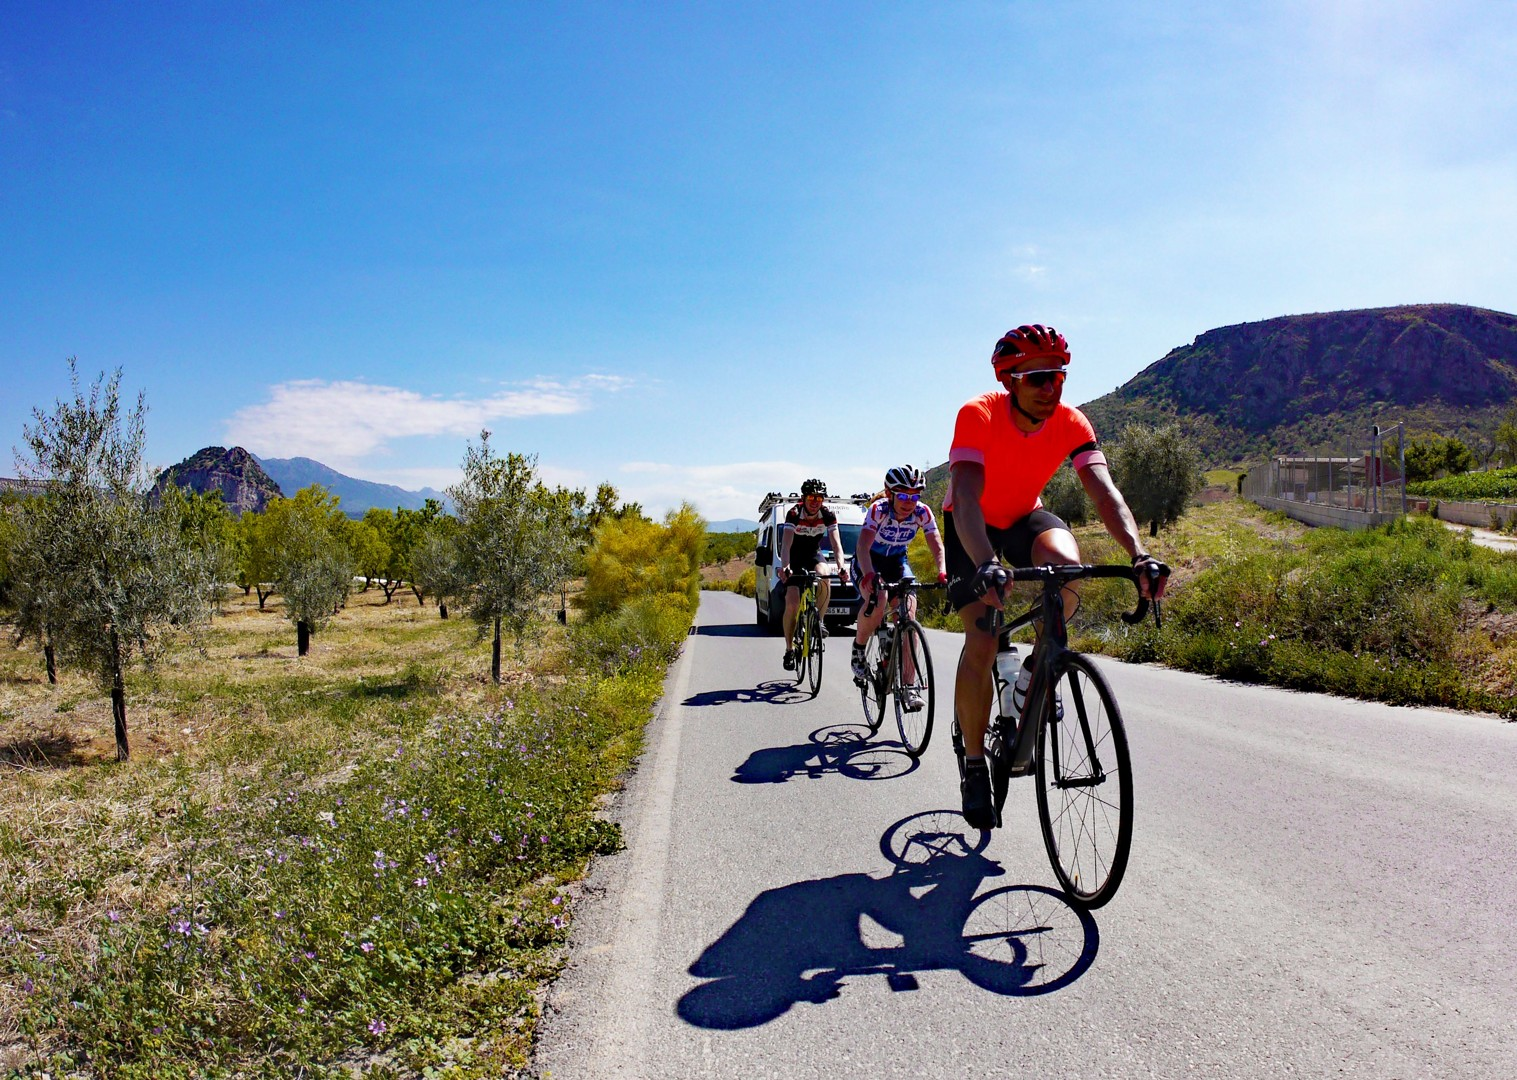 road-cycling-holiday-del-norte-al-sur.jpg - Spain - Basque Country to Andalucia - North to South (21 Days) - Guided Road Cycling Holiday - Road Cycling